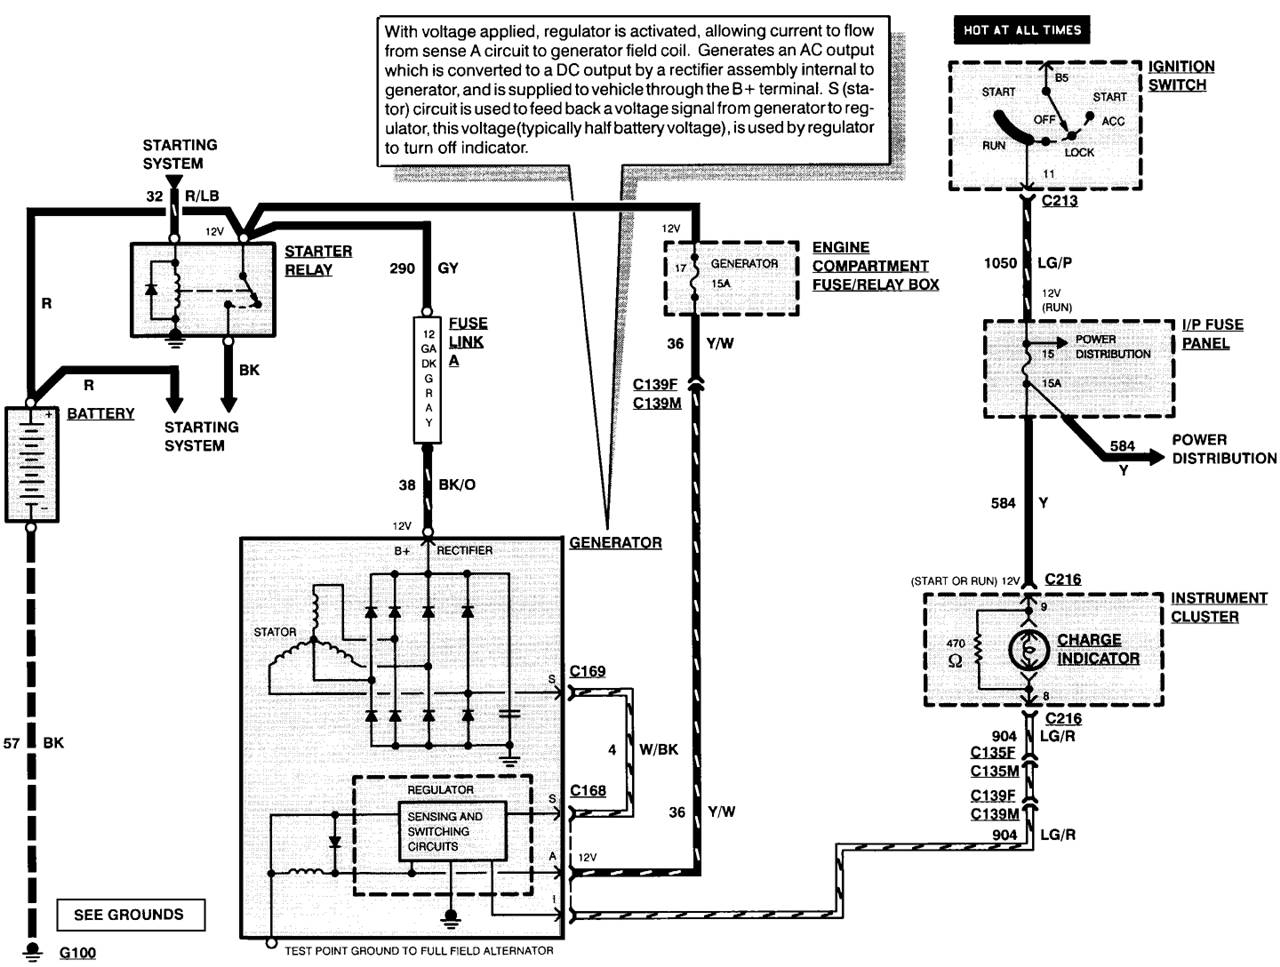 Ford Alternator Wiring Diagram No Regulator | Manual E-Books - Ford Alternator Wiring Diagram